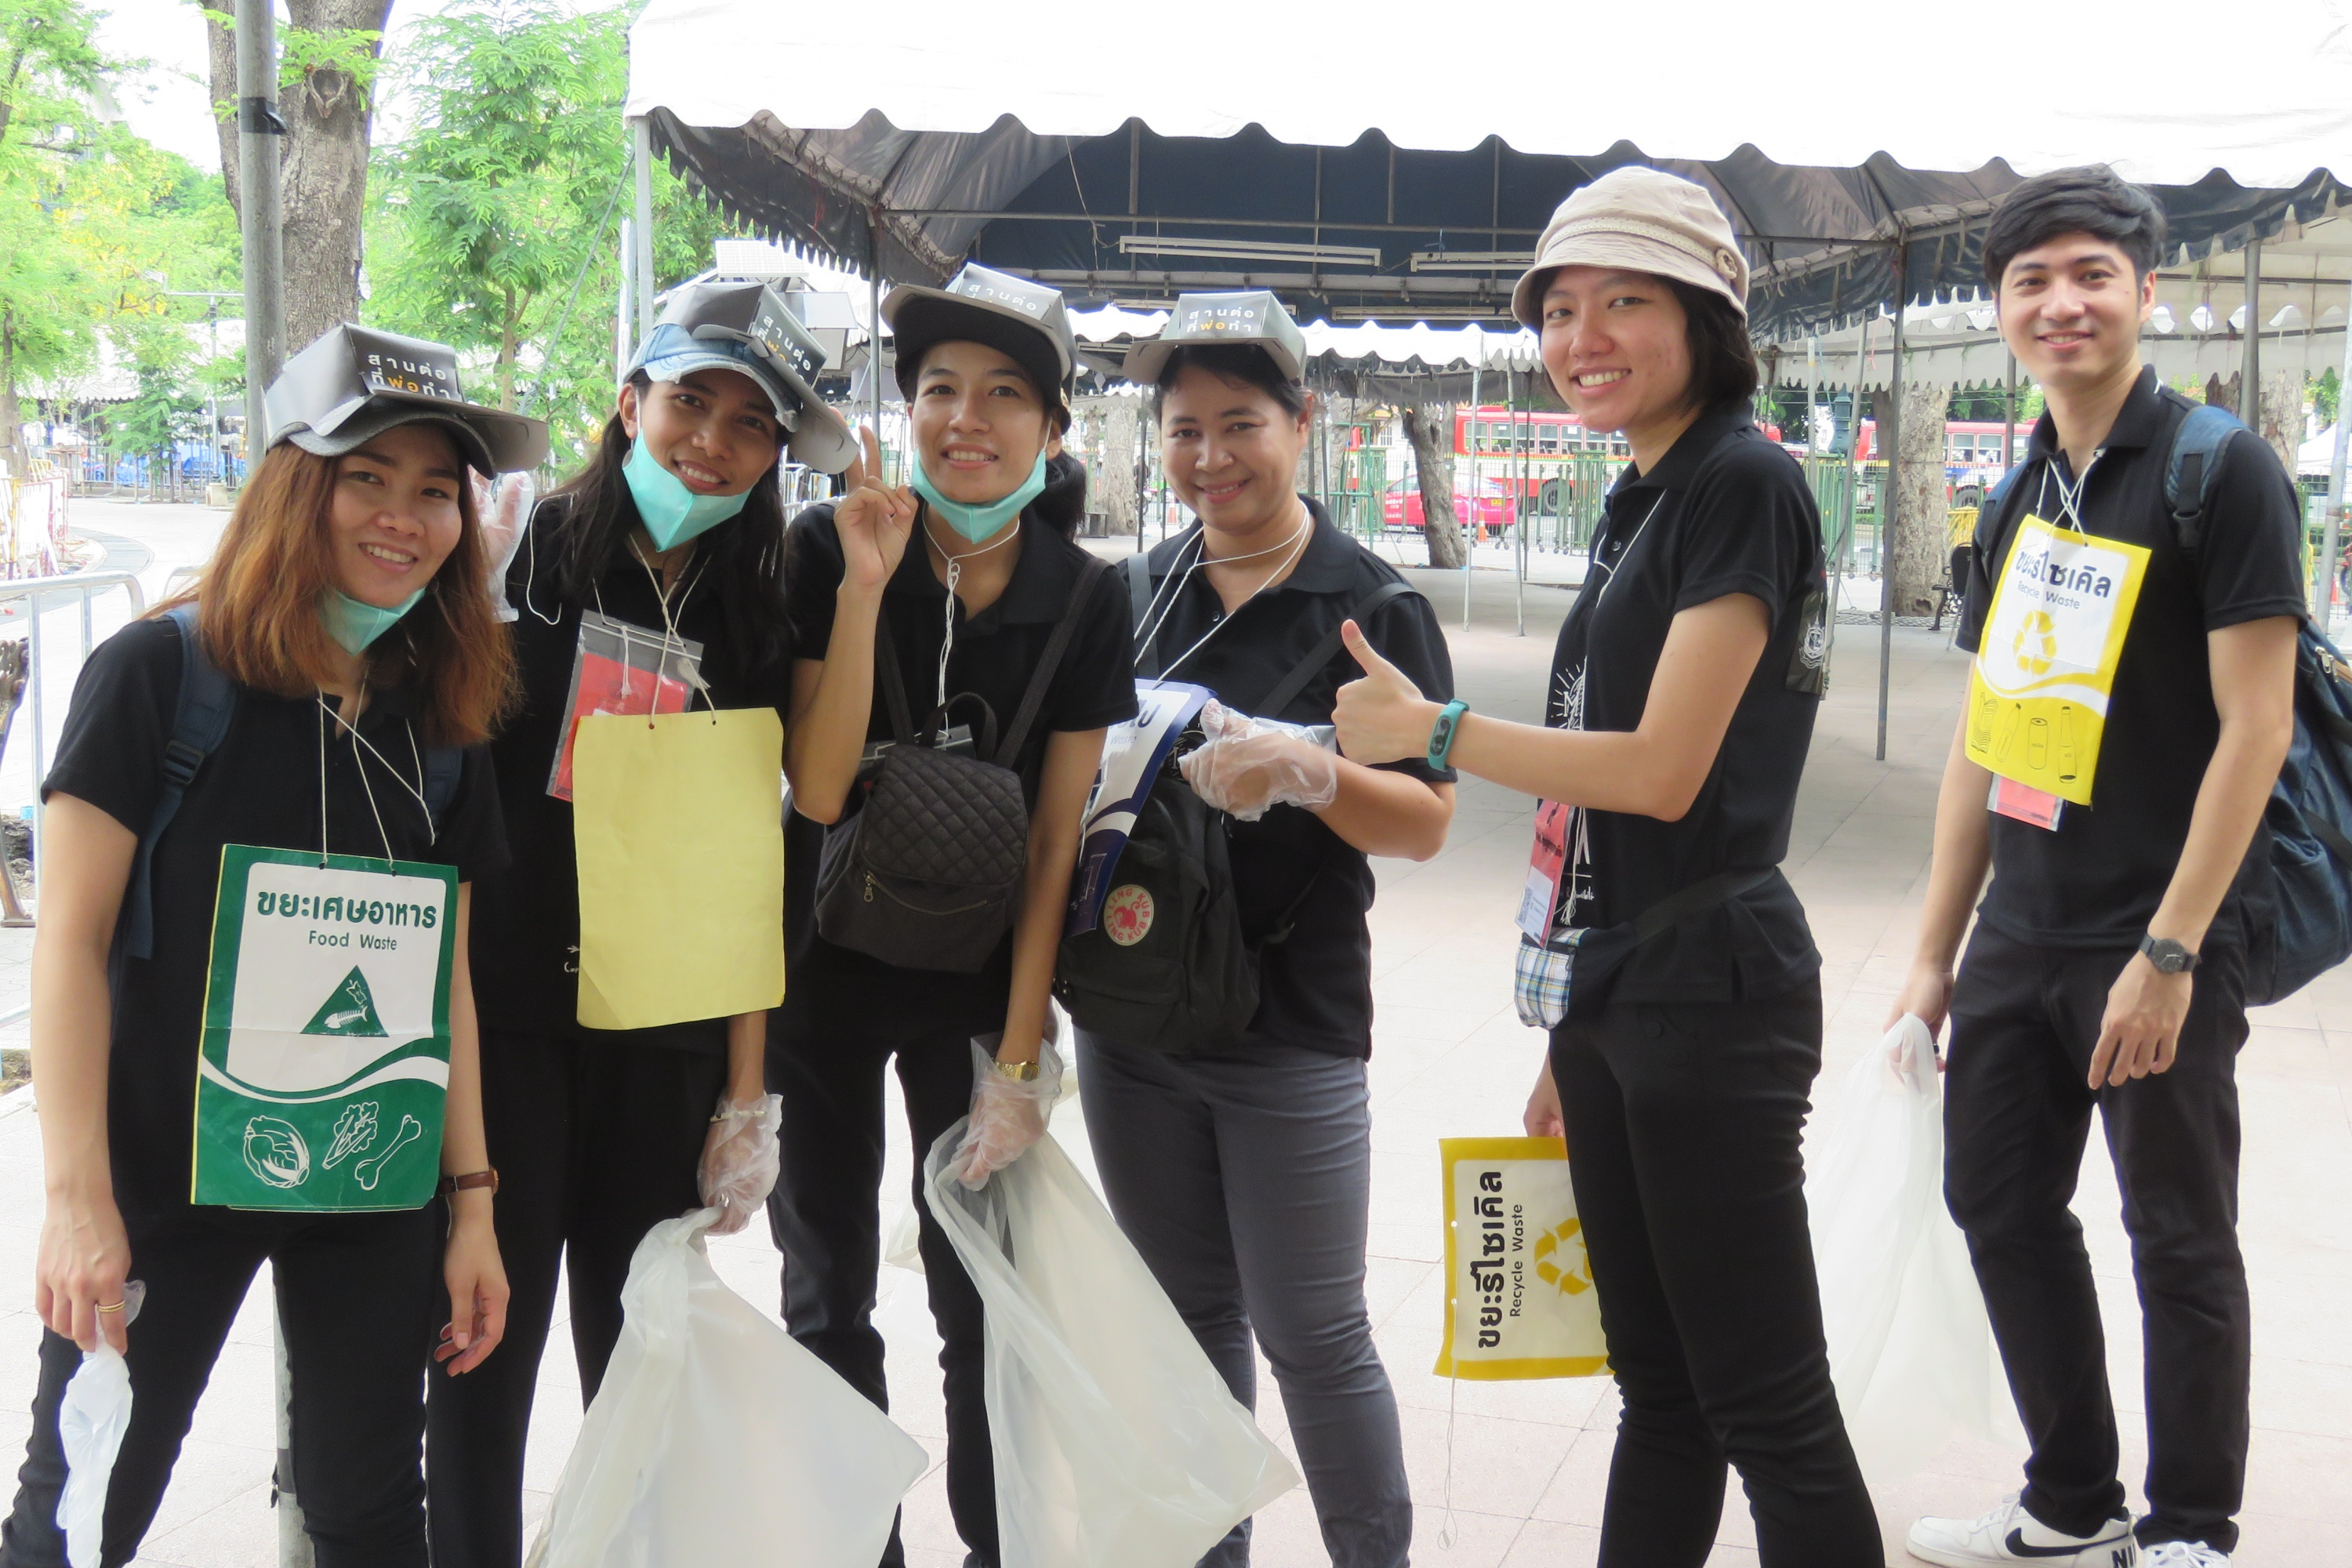 CSR Activity 2017: 29 April 2017 (at The Grand Temple Palace)